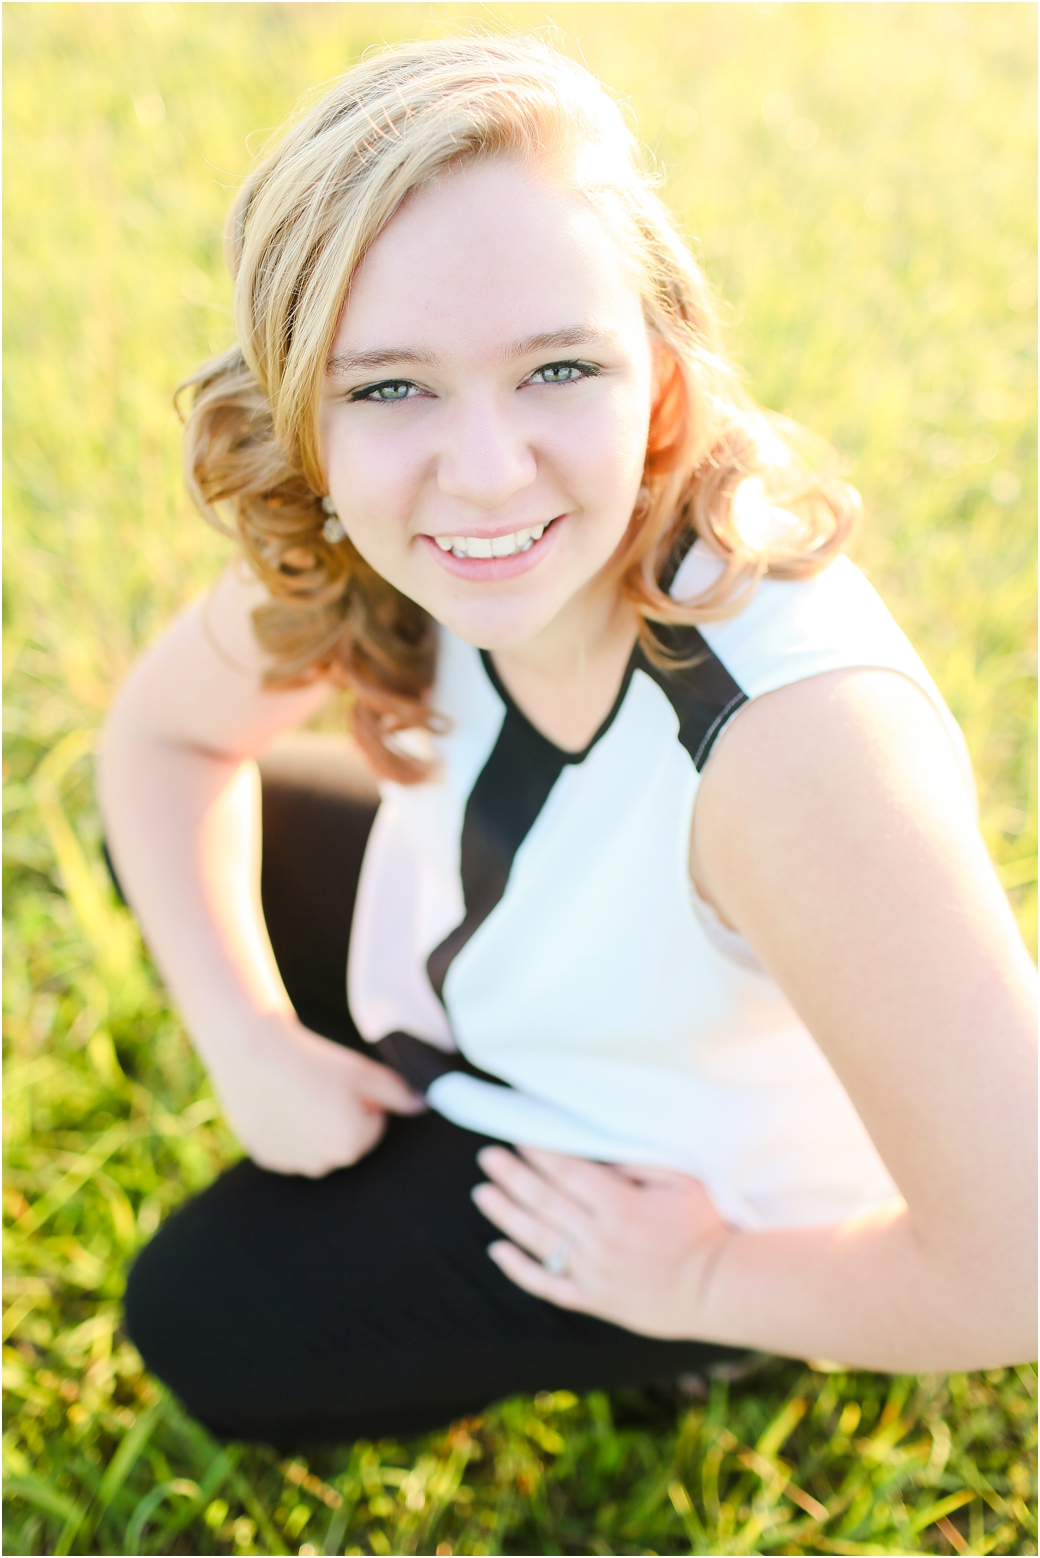 knoxvilleseniorphotographerb07.jpg